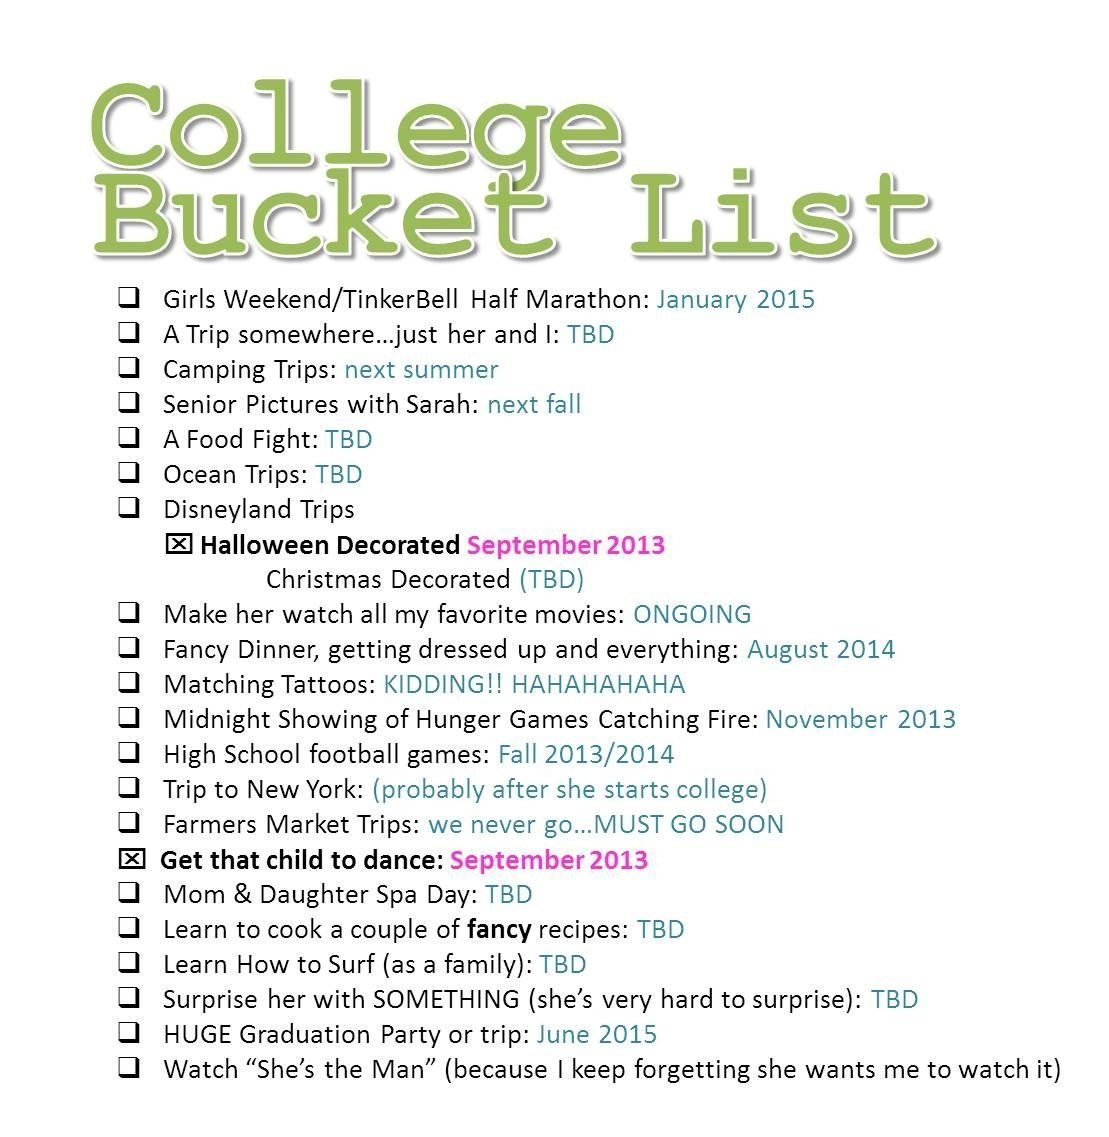 bingo: the college bucket list like the idea would use different